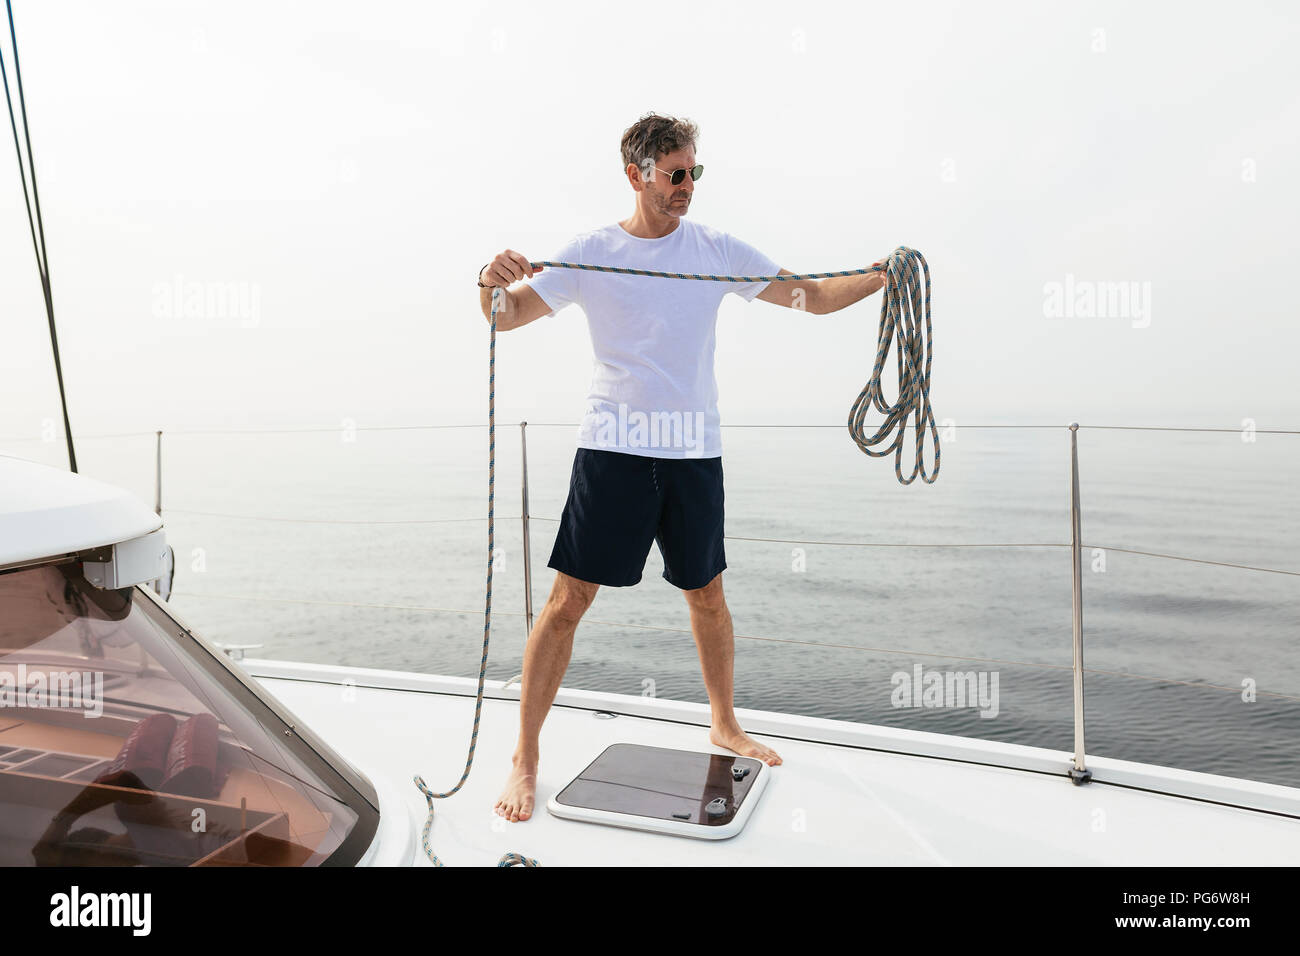 Mature man standing on catamaran, coiling rope - Stock Image